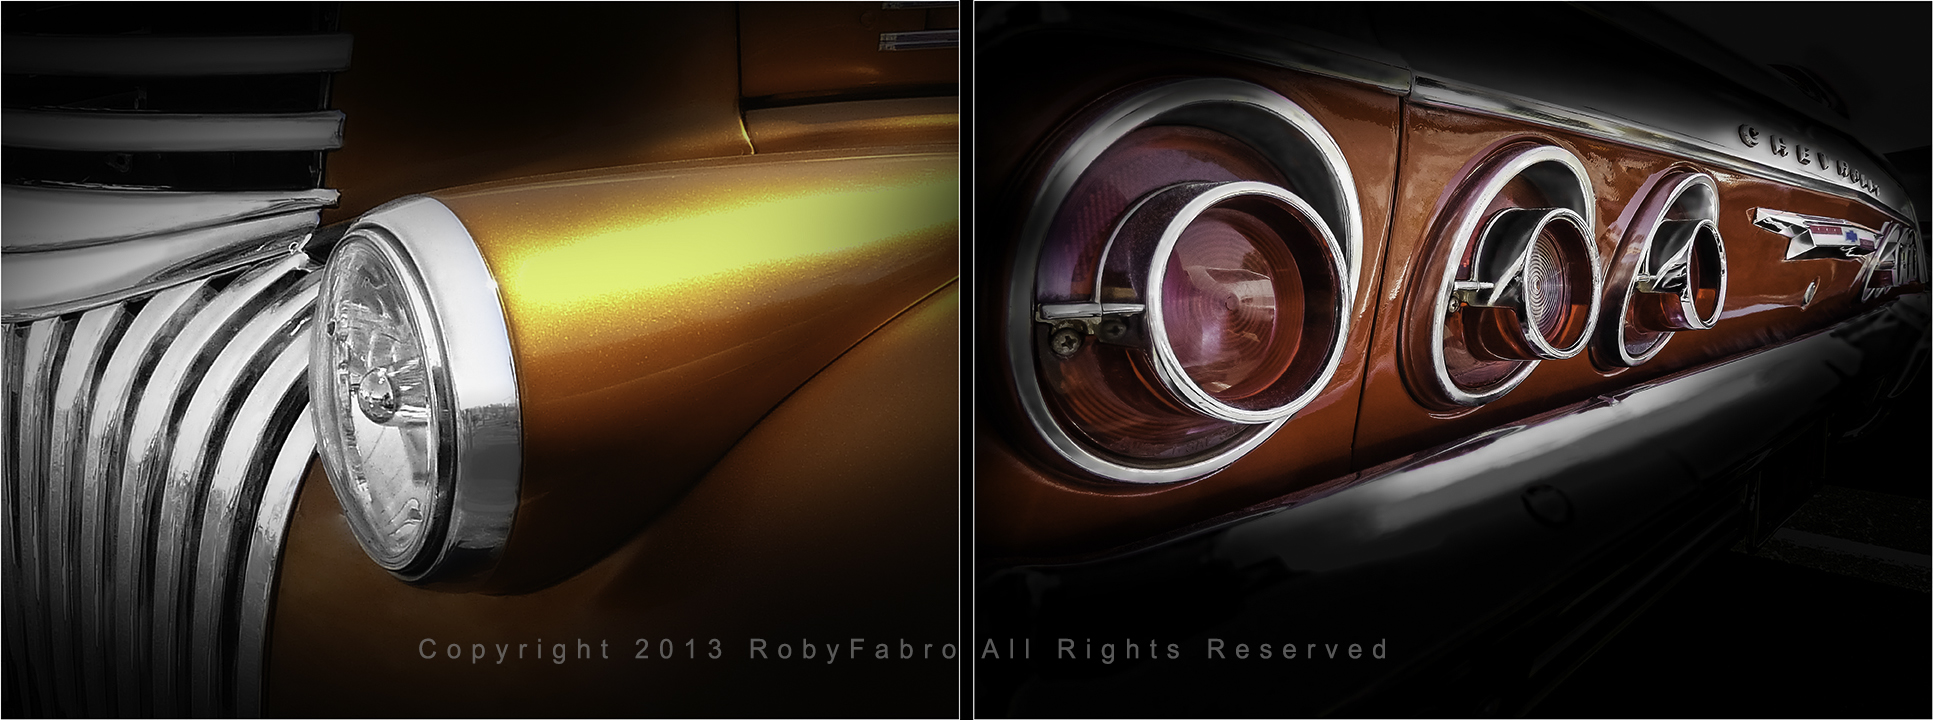 Vintage Cars. Boston automotive photographer | RobyFabro